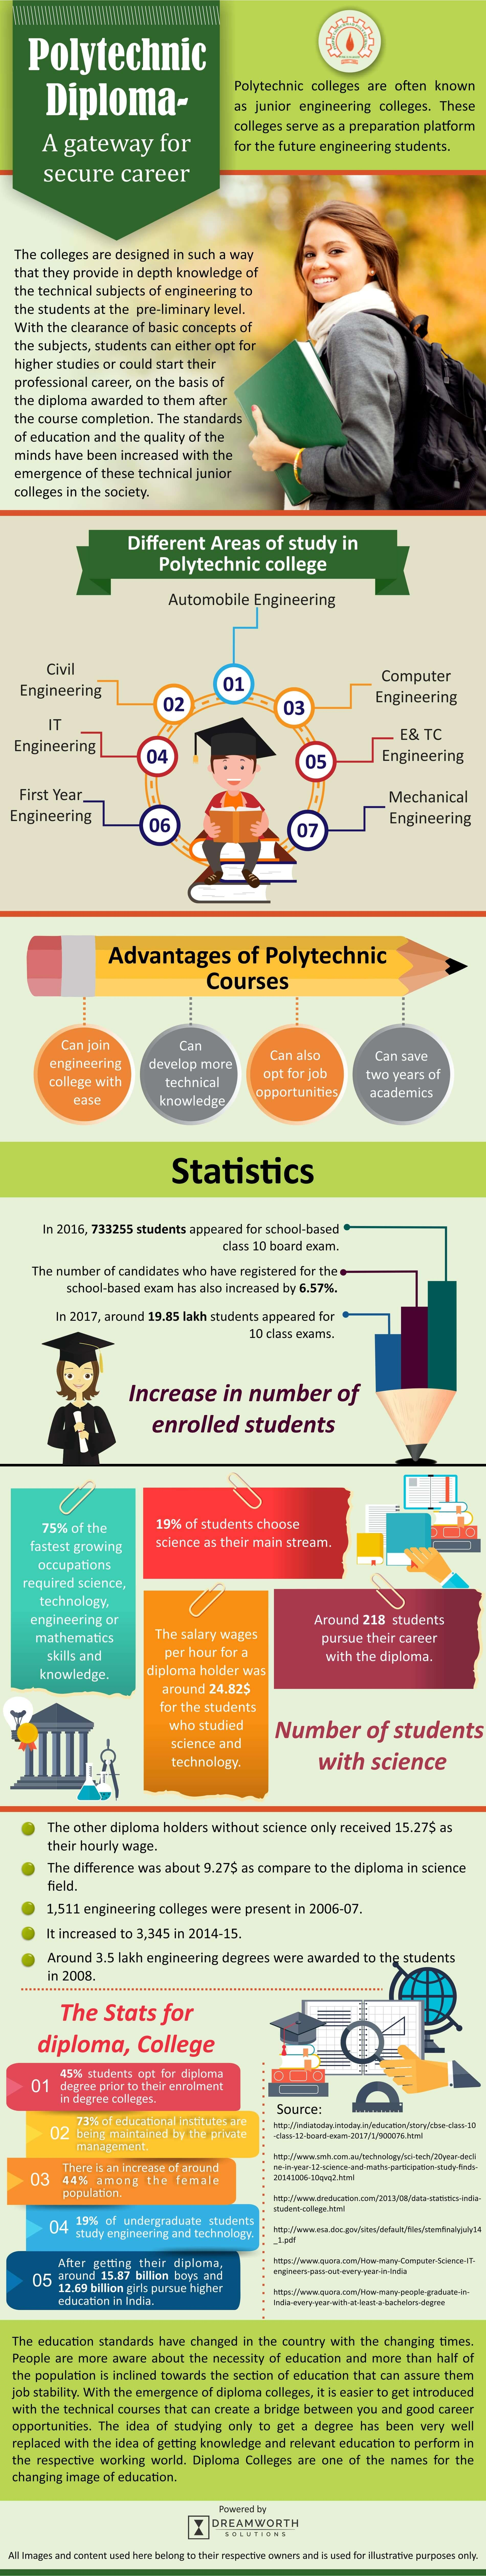 Get the updated statistics for the diploma colleges in India